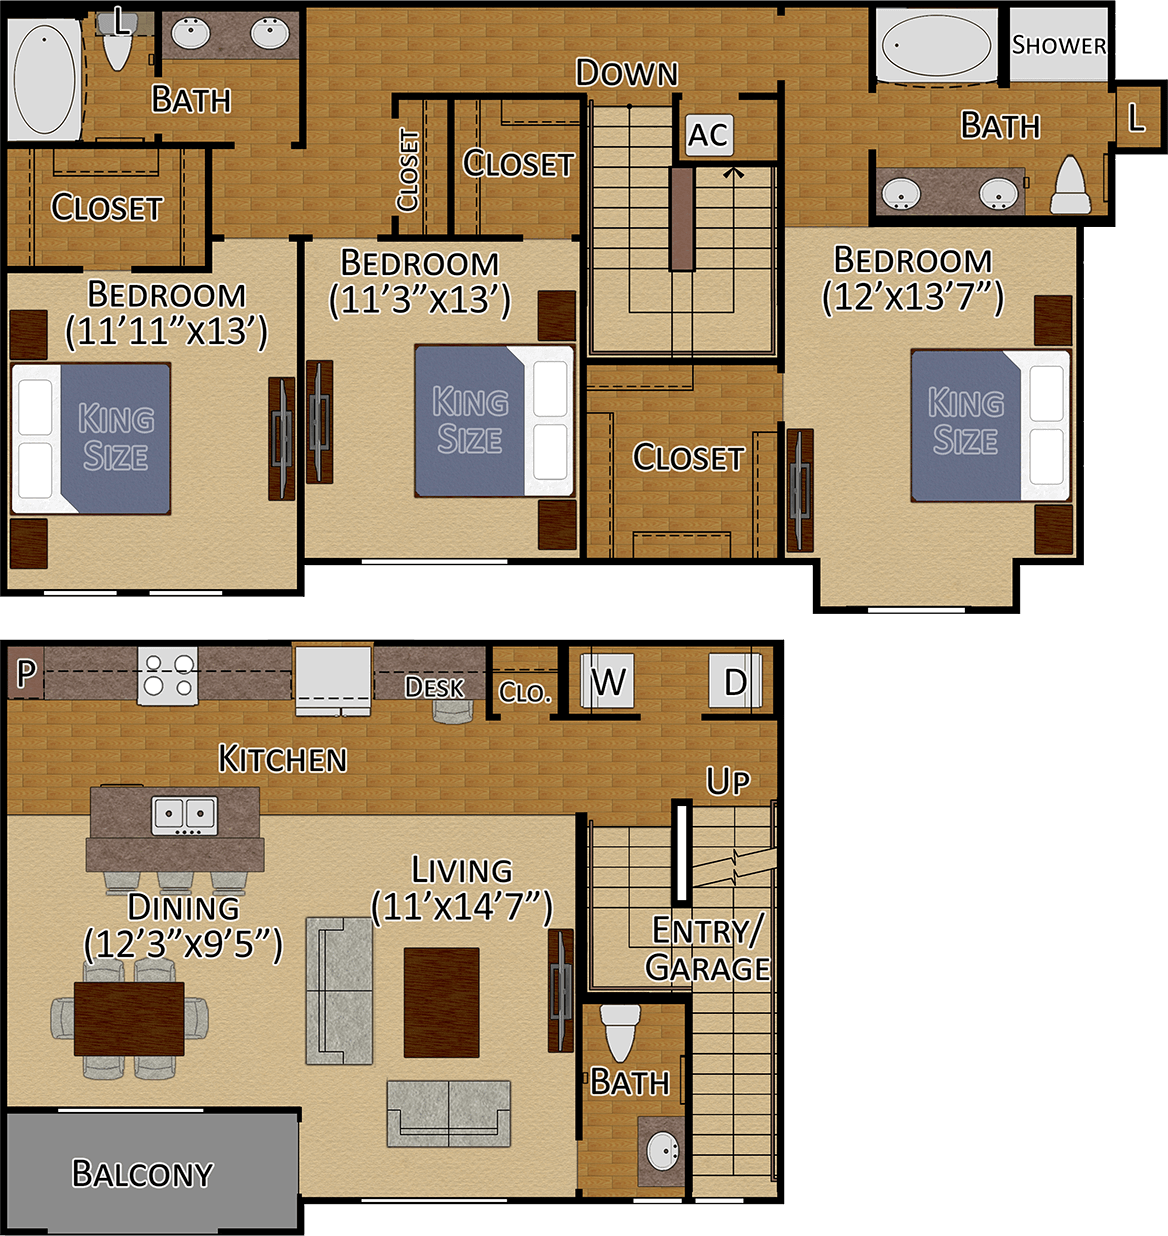 Tuckerton III Layout